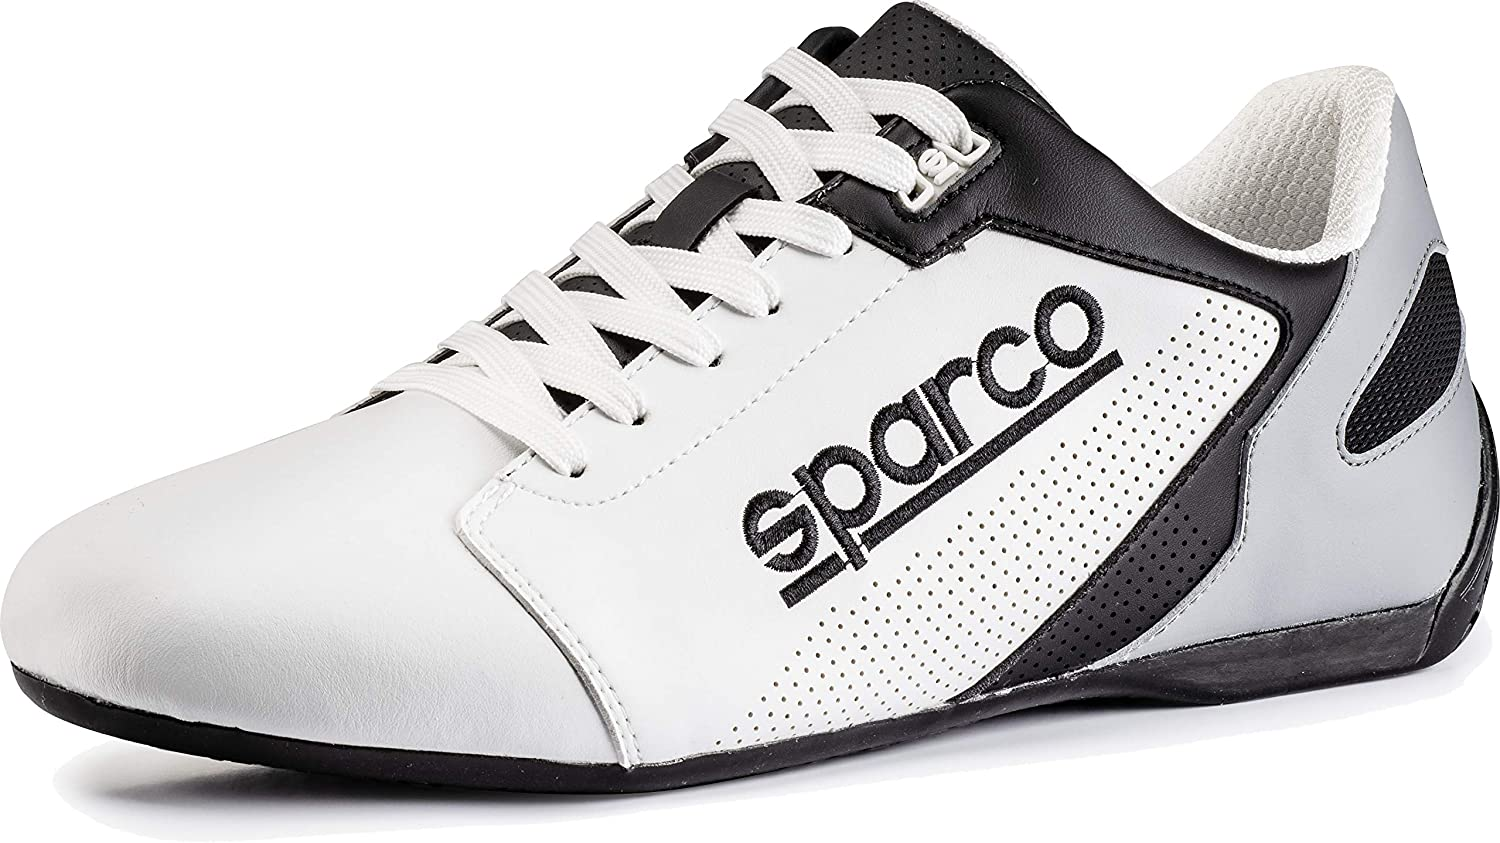 SPARCO S00126342NRRS SL-17 Trainers Size 42 Black Red